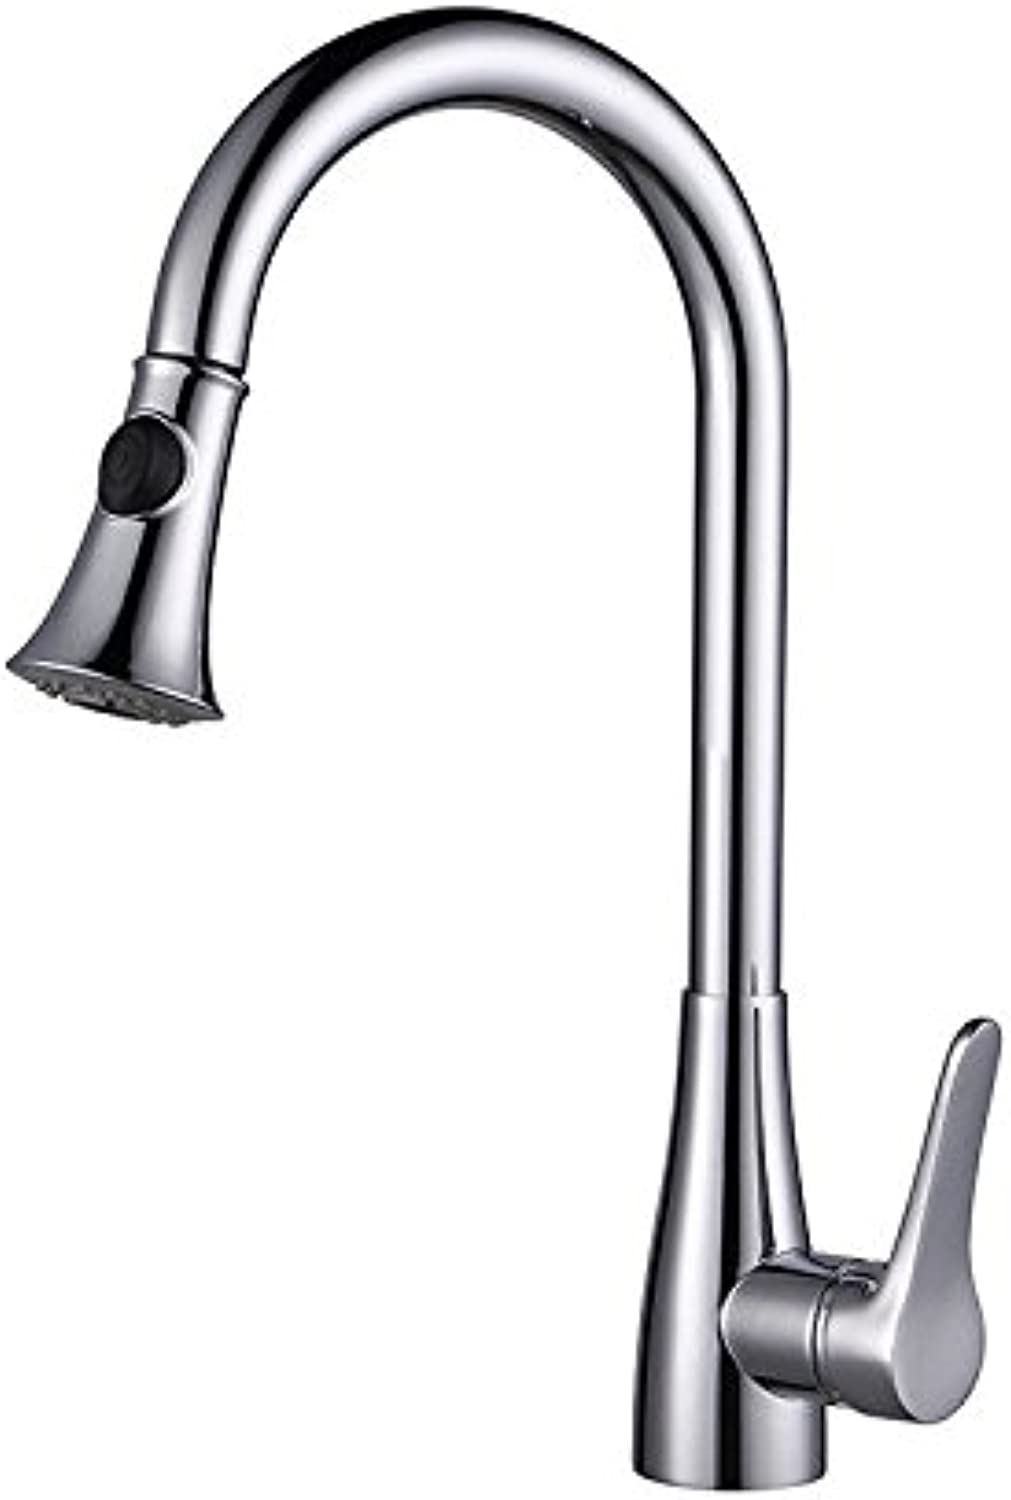 ZXYThe kitchen sink faucet kitchen tap Chrome pull single hole countertop faucet duplex mixing tap